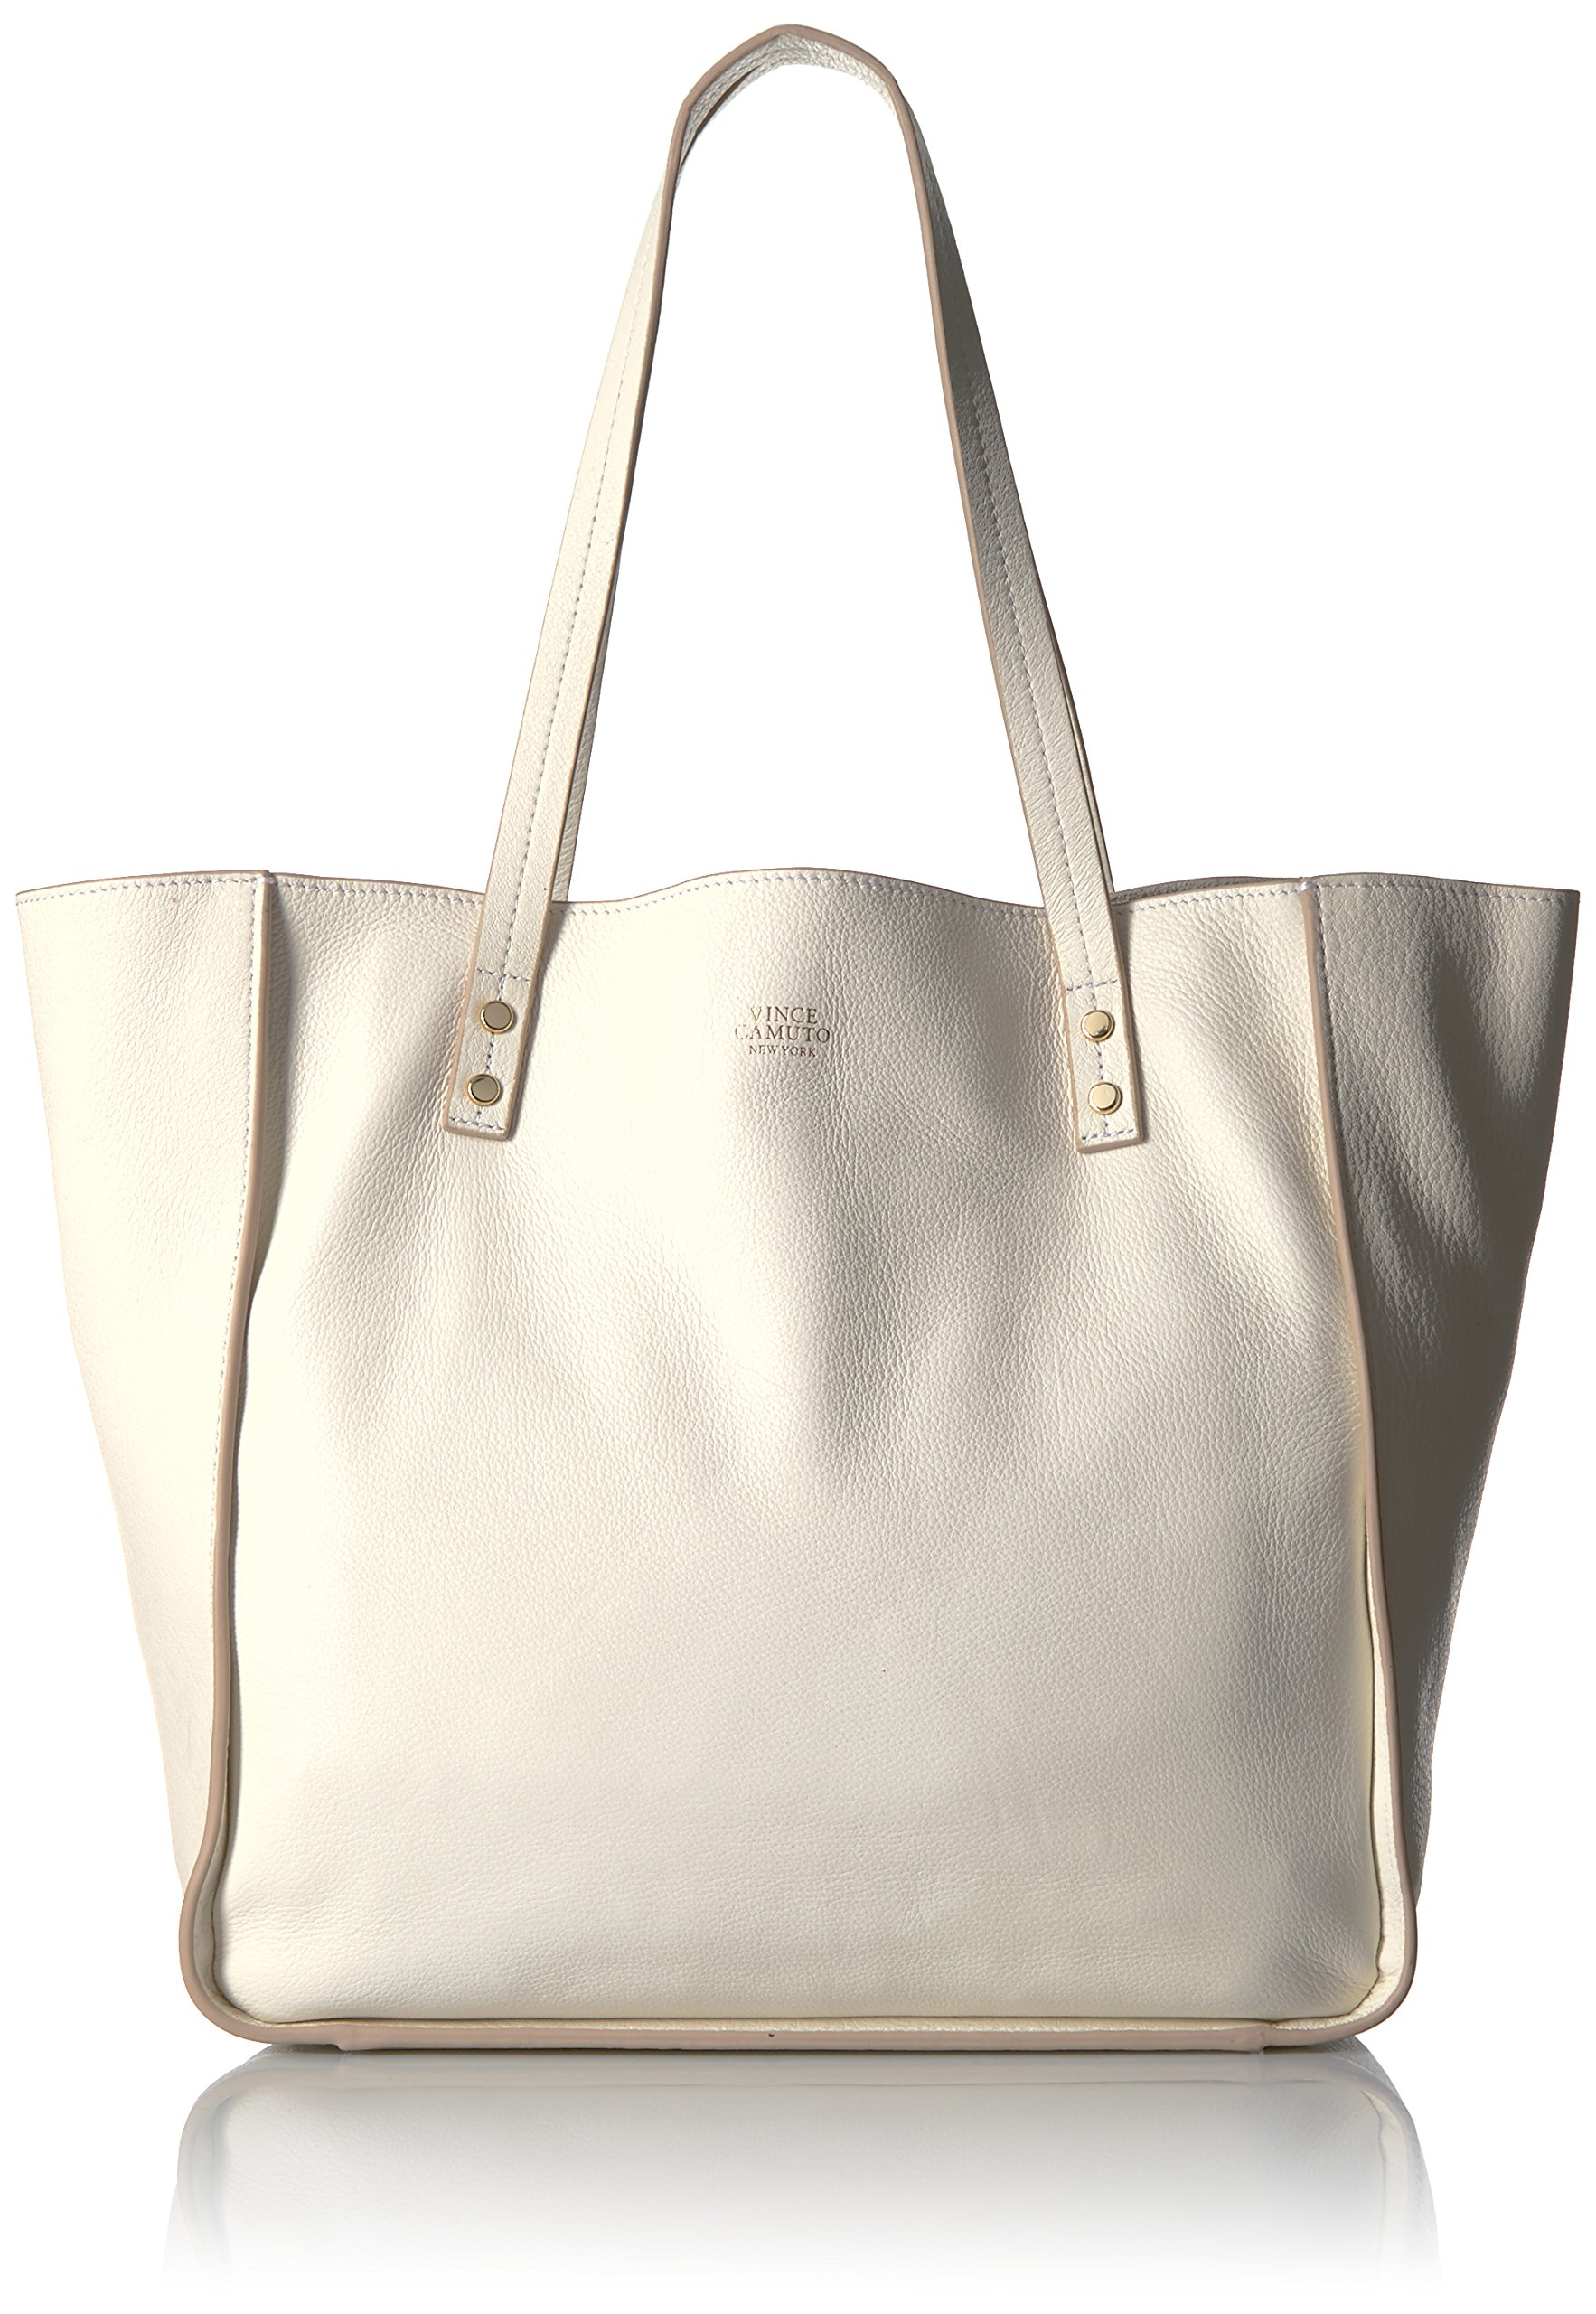 Vince Camuto Pamie Satchel, Feather White